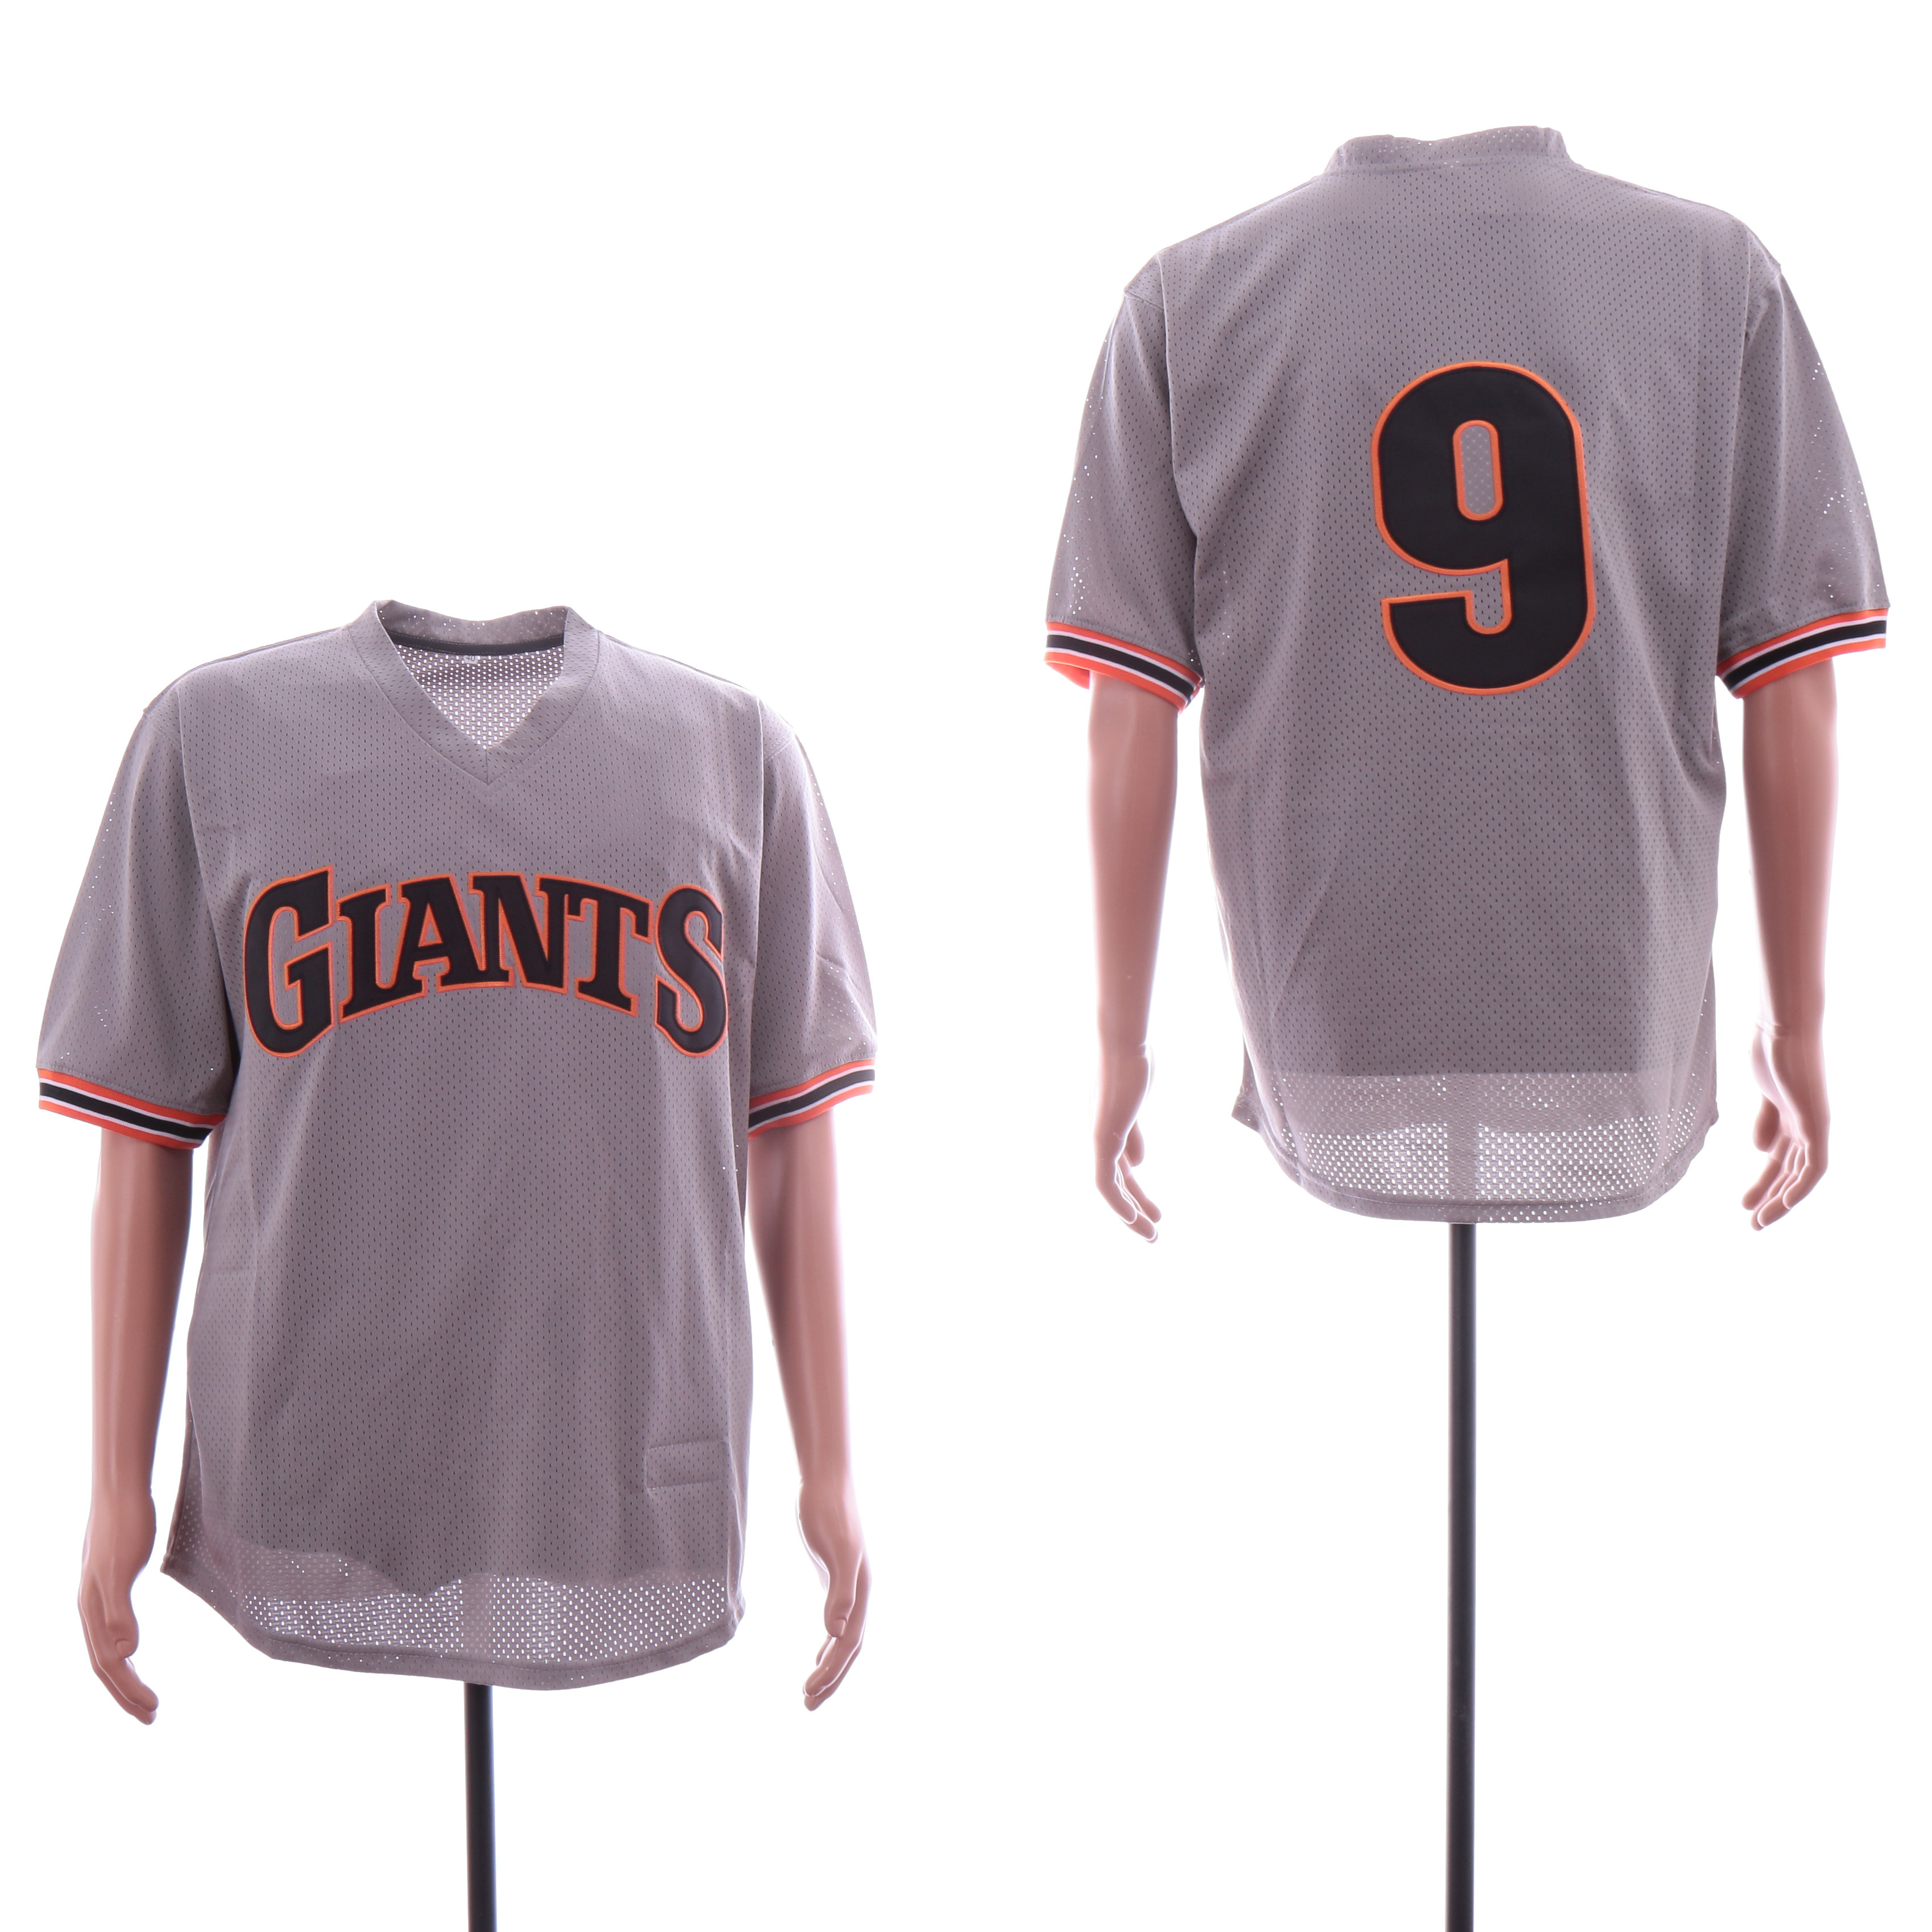 Giants 9 Matt Williams Gray BP Mesh Jersey